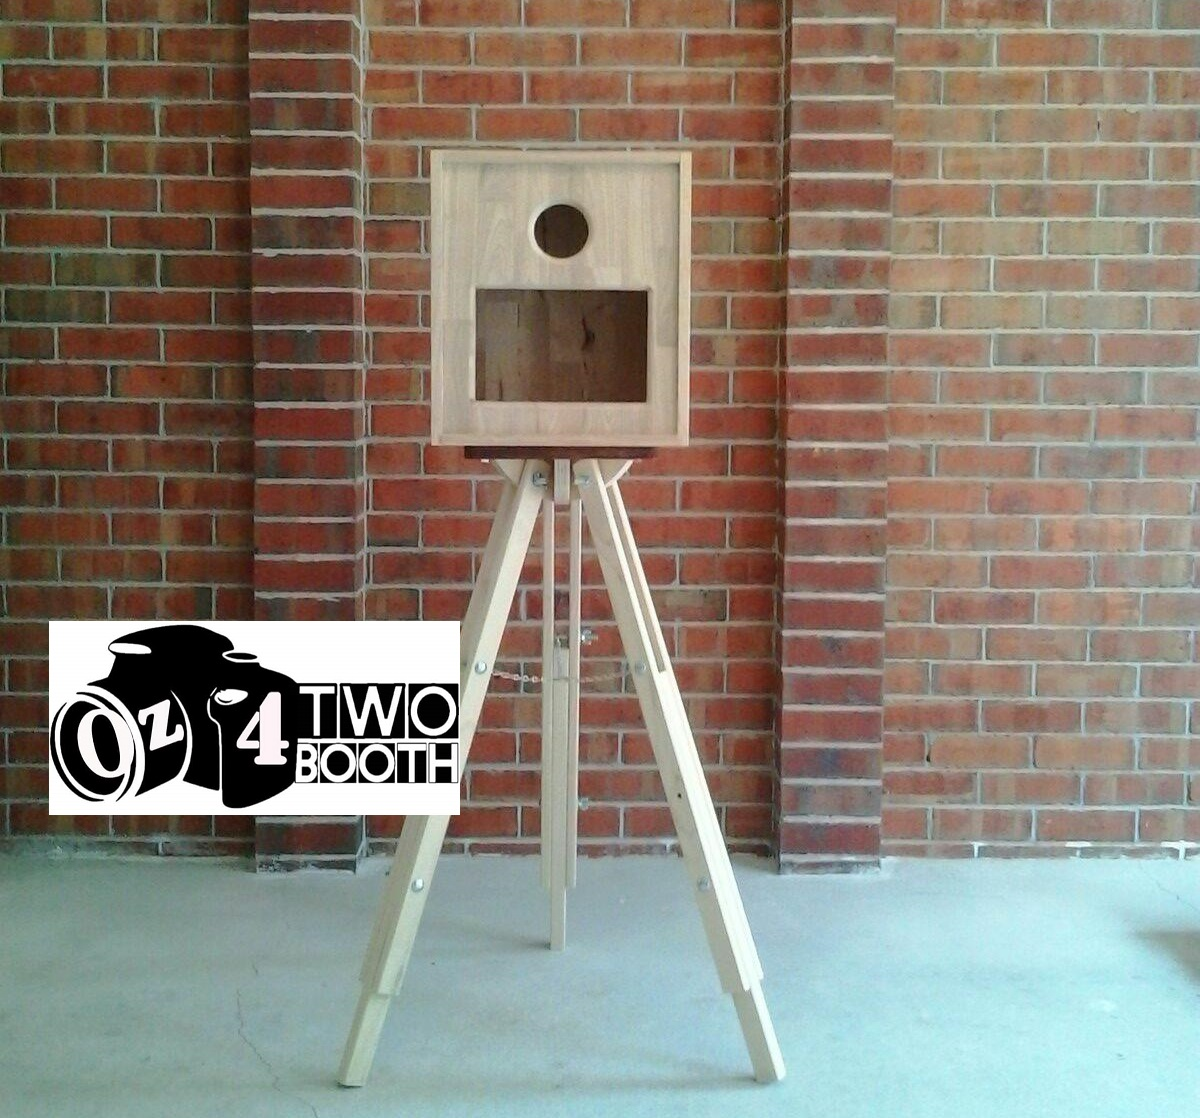 File:OZ4TWOBOOTH- DIY Retro Booth jpg - Wikimedia Commons